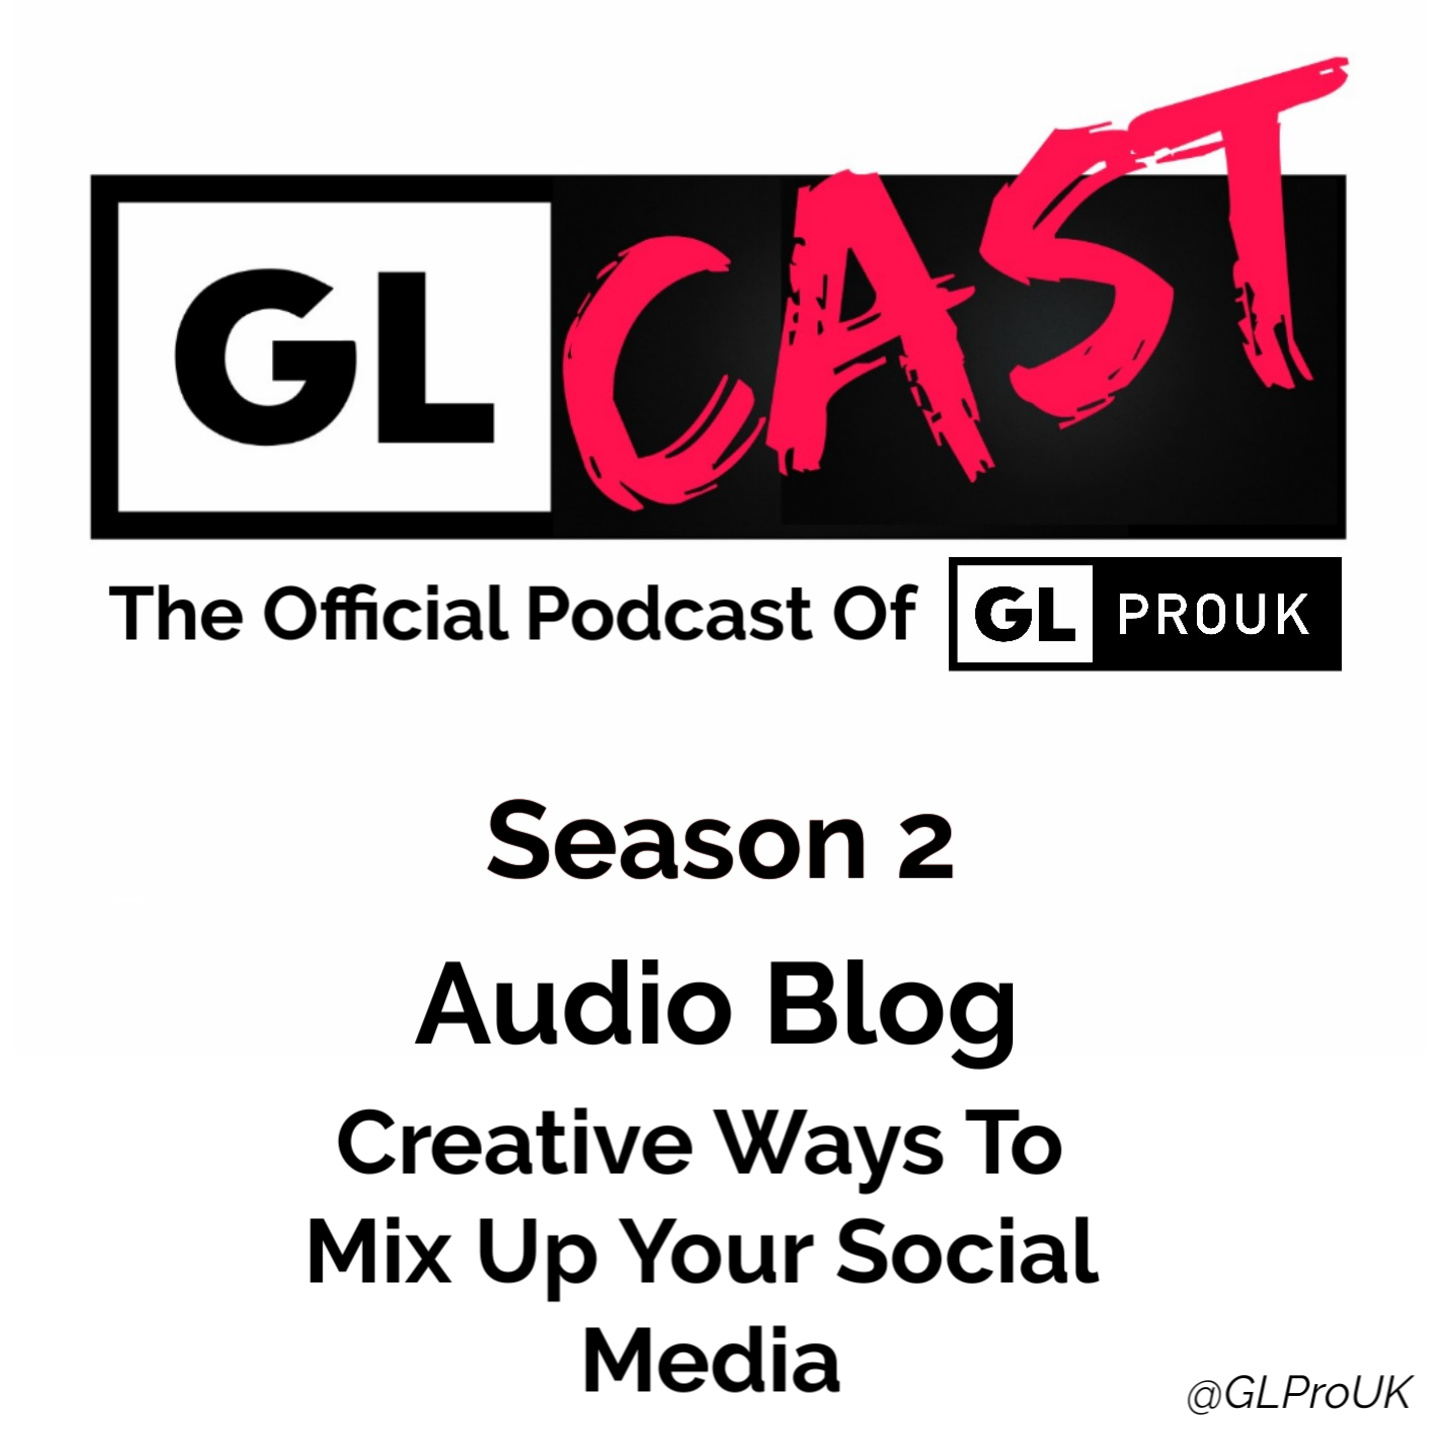 Audio Blog: Creative Ways To Mix Up Your Social Media show art